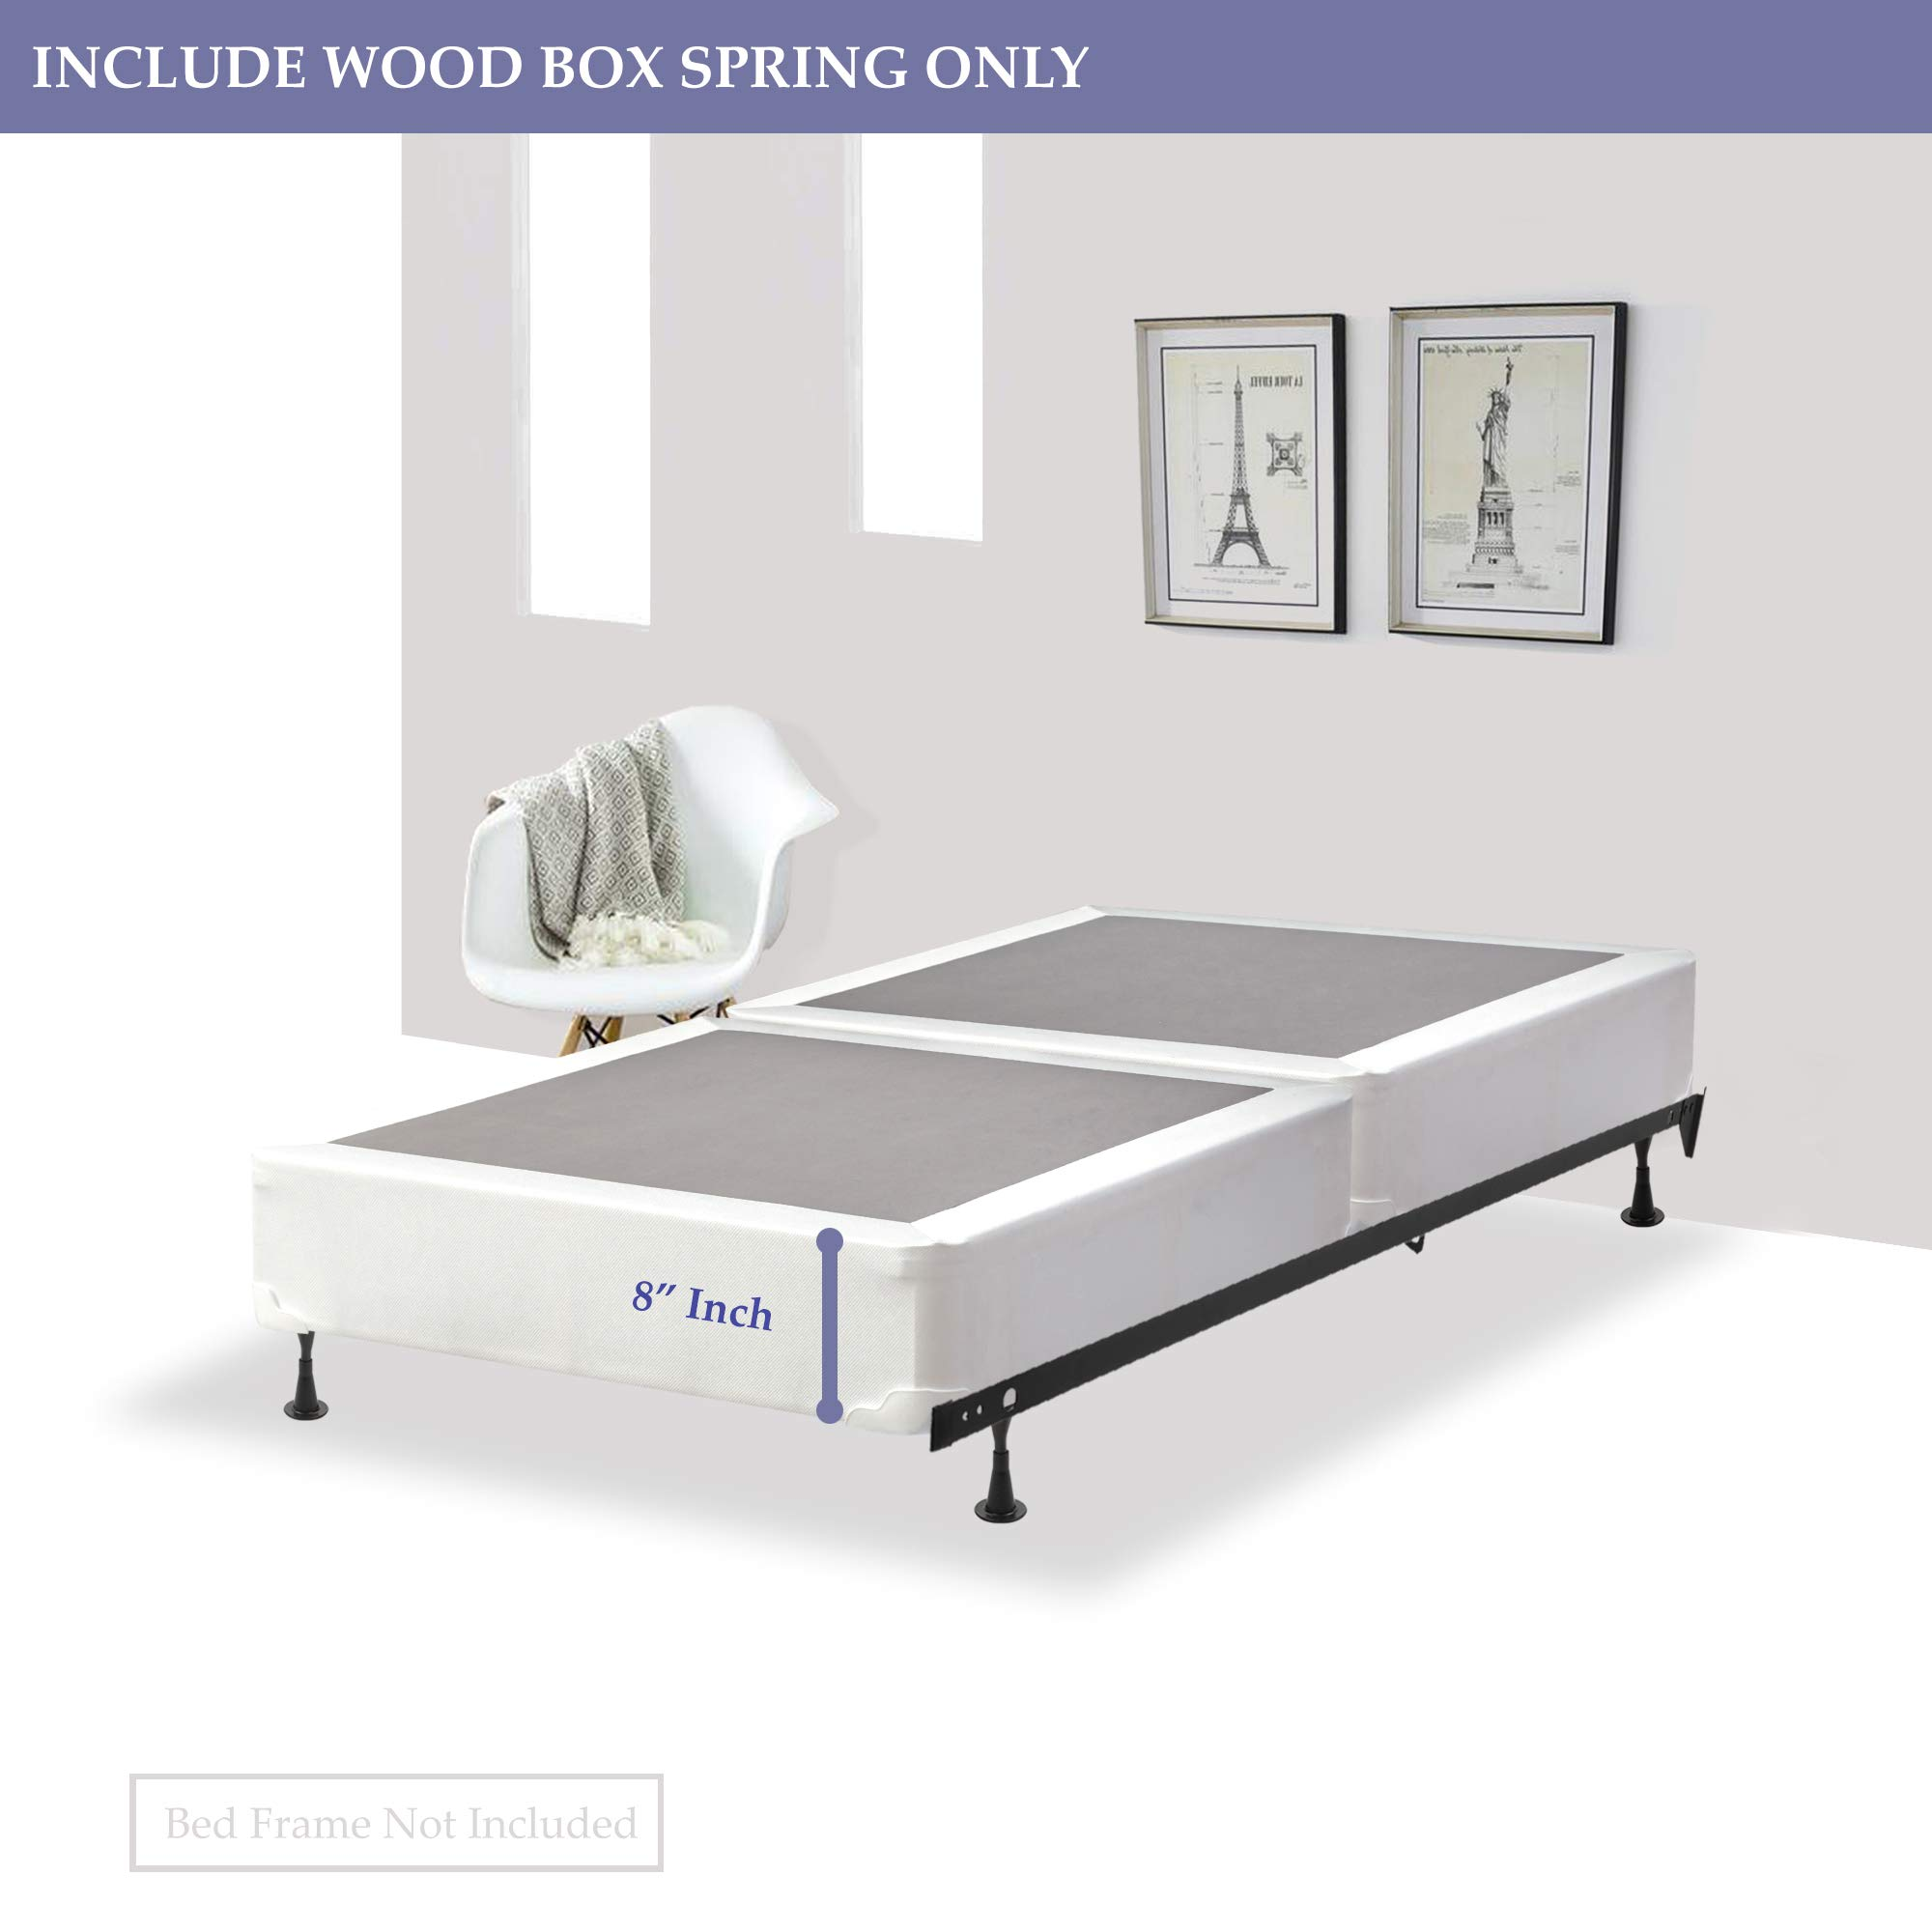 GREATON 680v-3/3-3s Split Fully Box Spring/Foudation for Mattress Assembled, Twin, 39x75 by GREATON